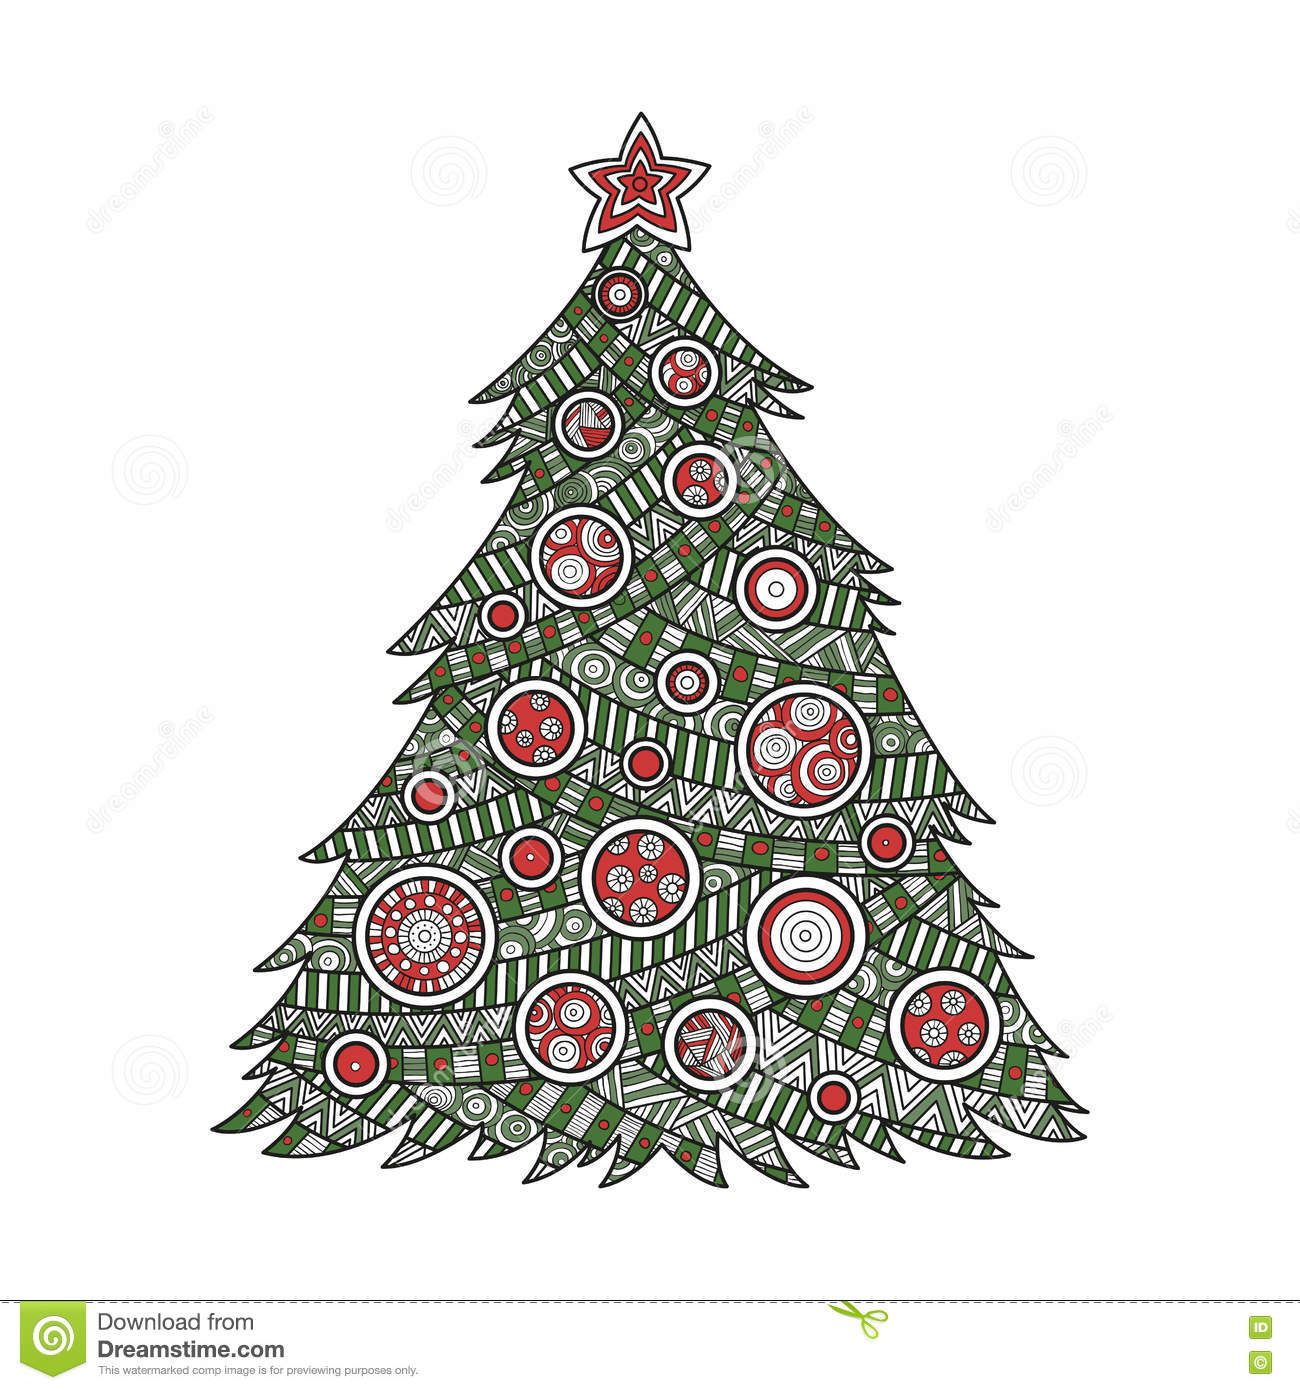 Coloring For Adults Christmas Tree Stock Illustration - Illustration ...